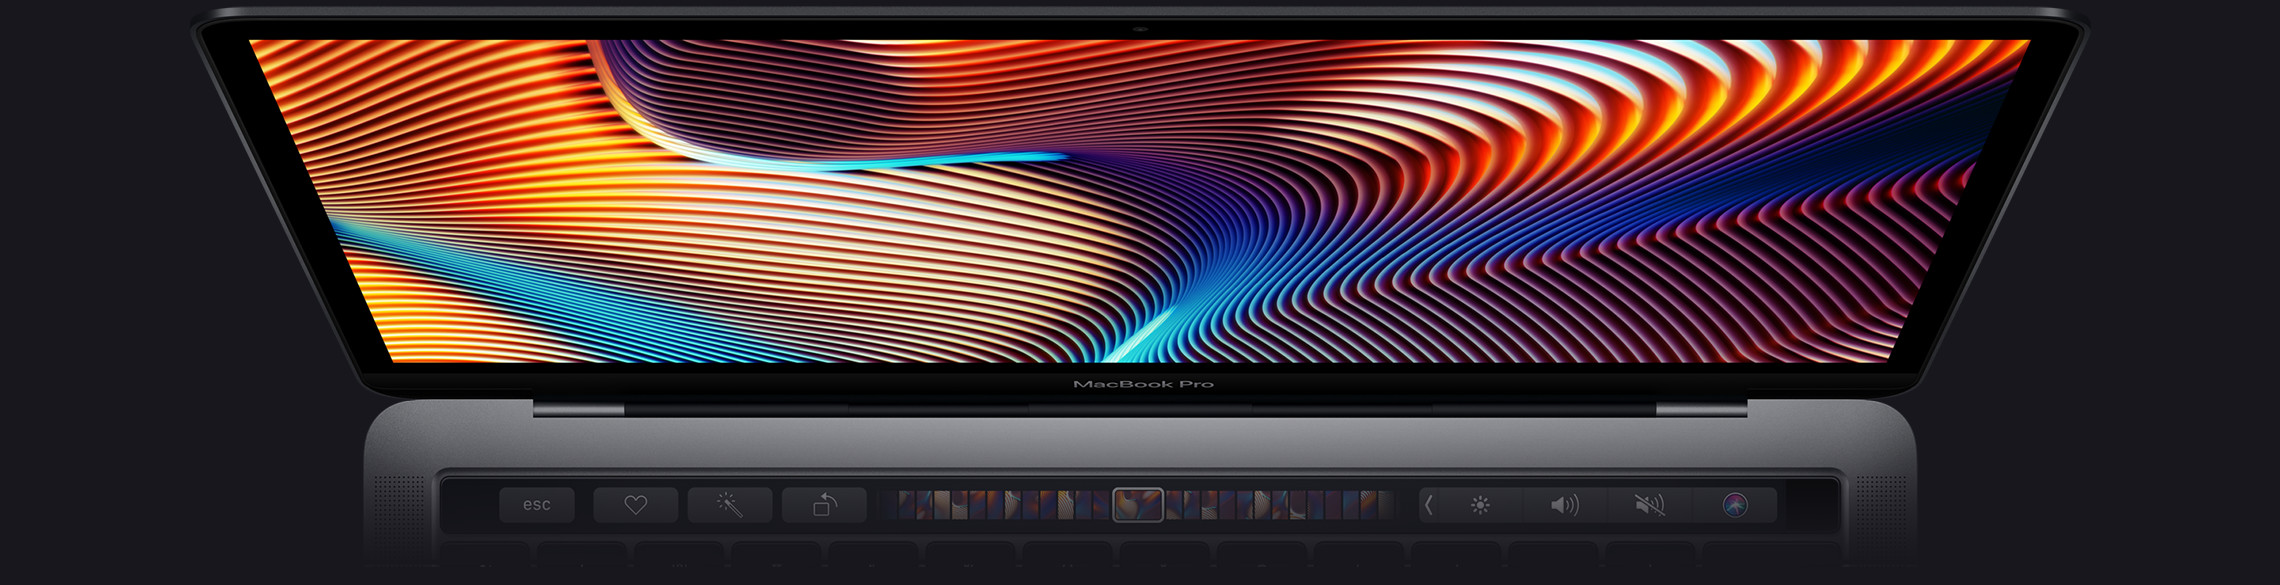 The New MacBook Pro | Imagine store : Imagine store